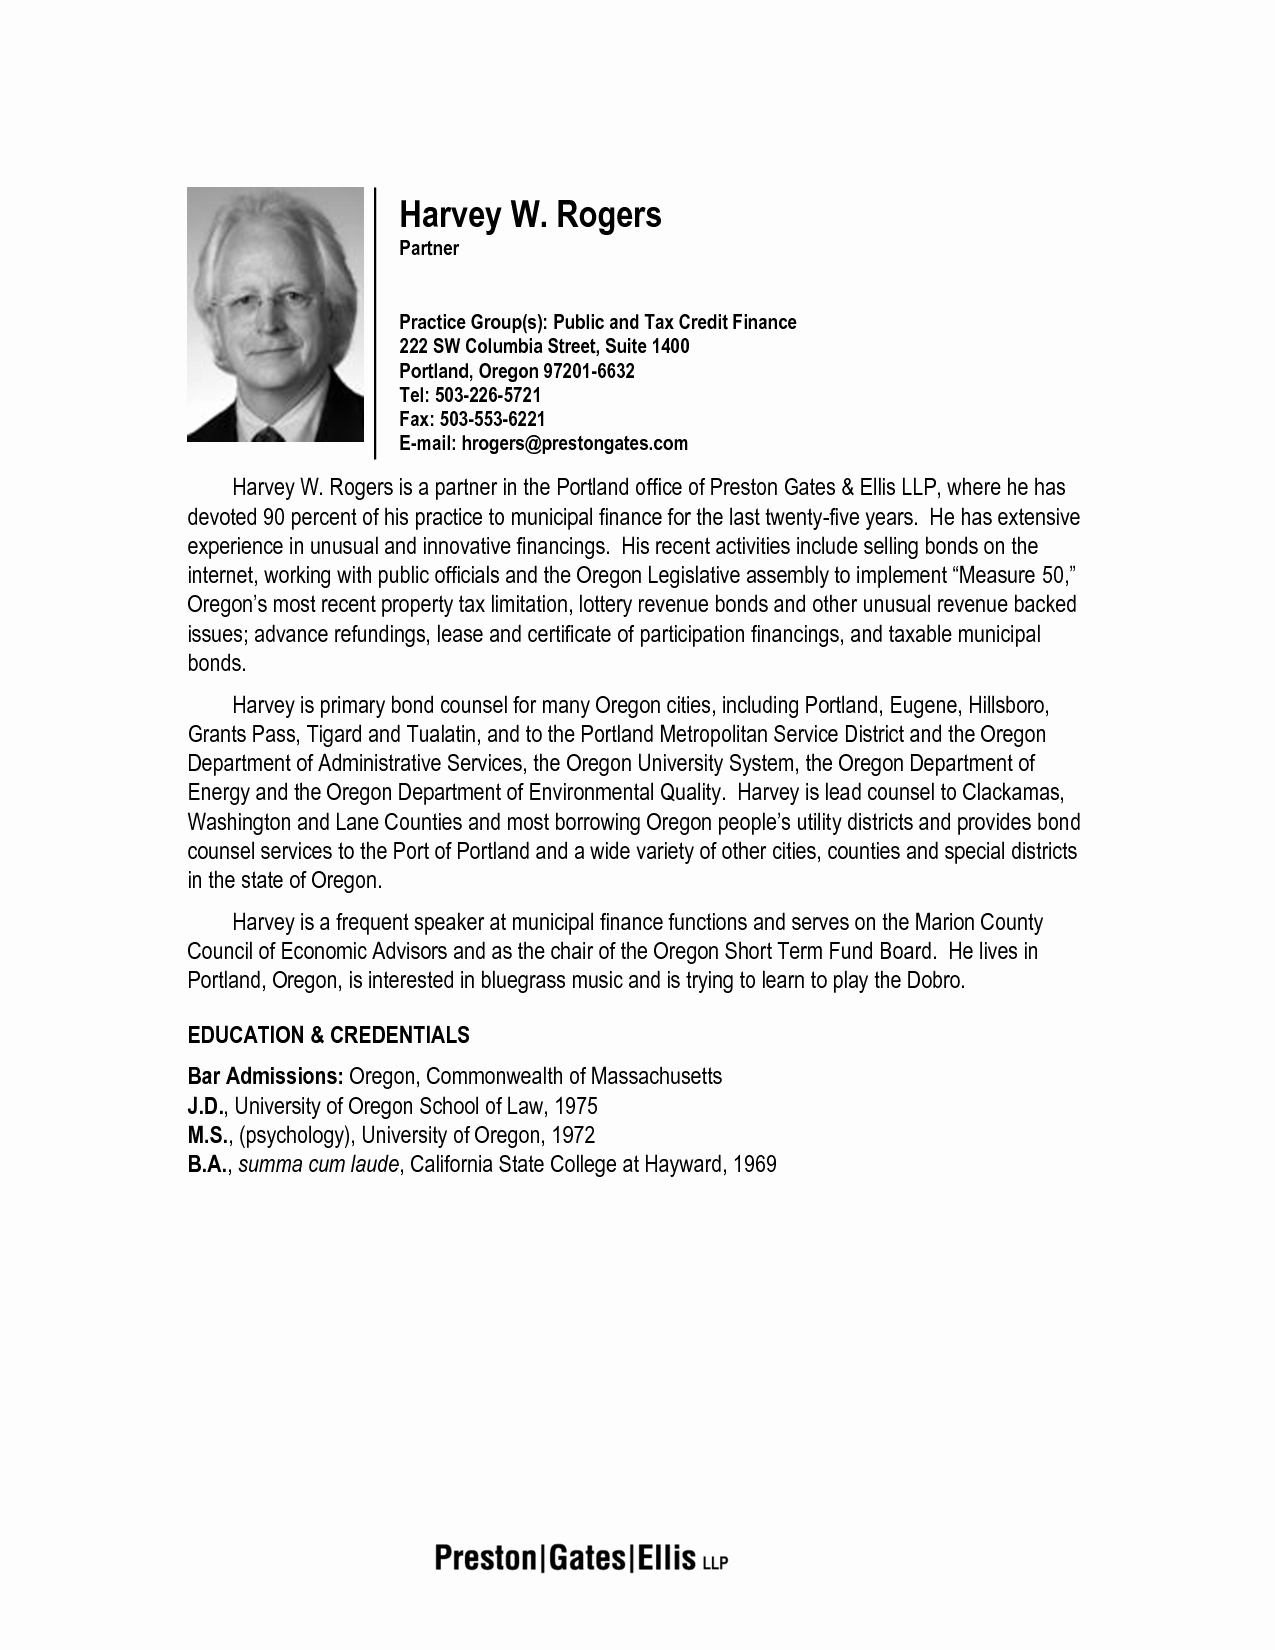 Professional Bio Template Word Elegant Professional Biography Template Microsoft Word form Bio